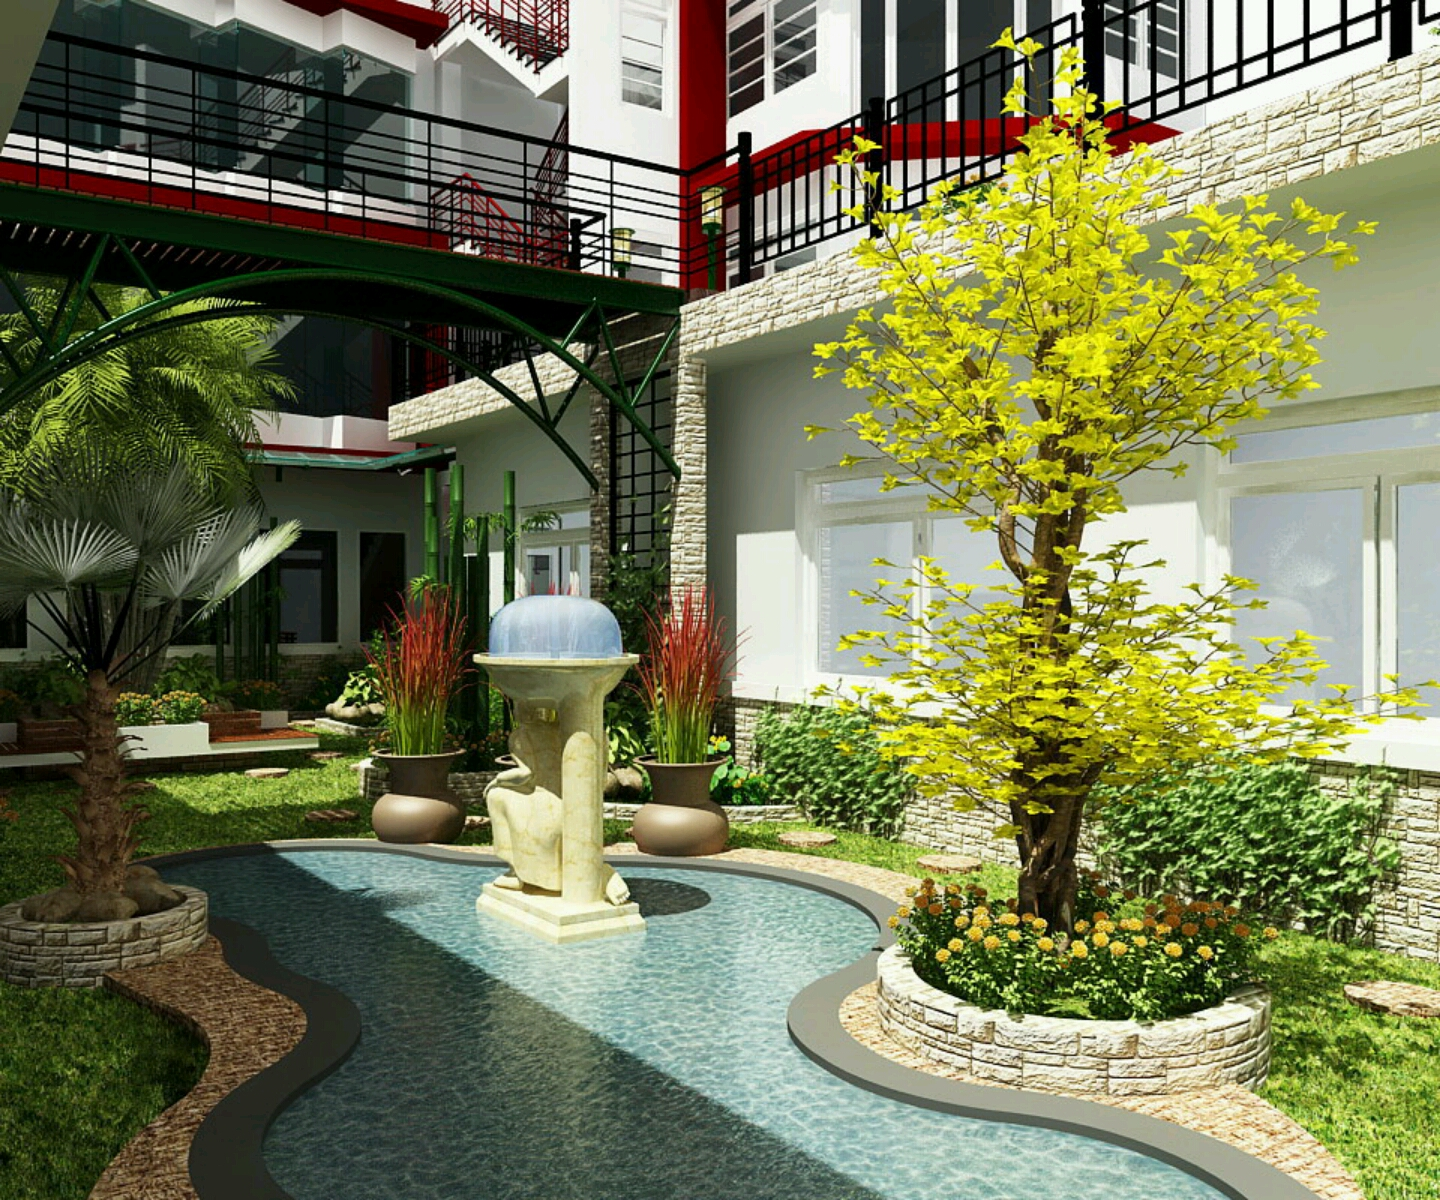 New home designs latest modern luxury homes beautiful for Ideas for home gardens design